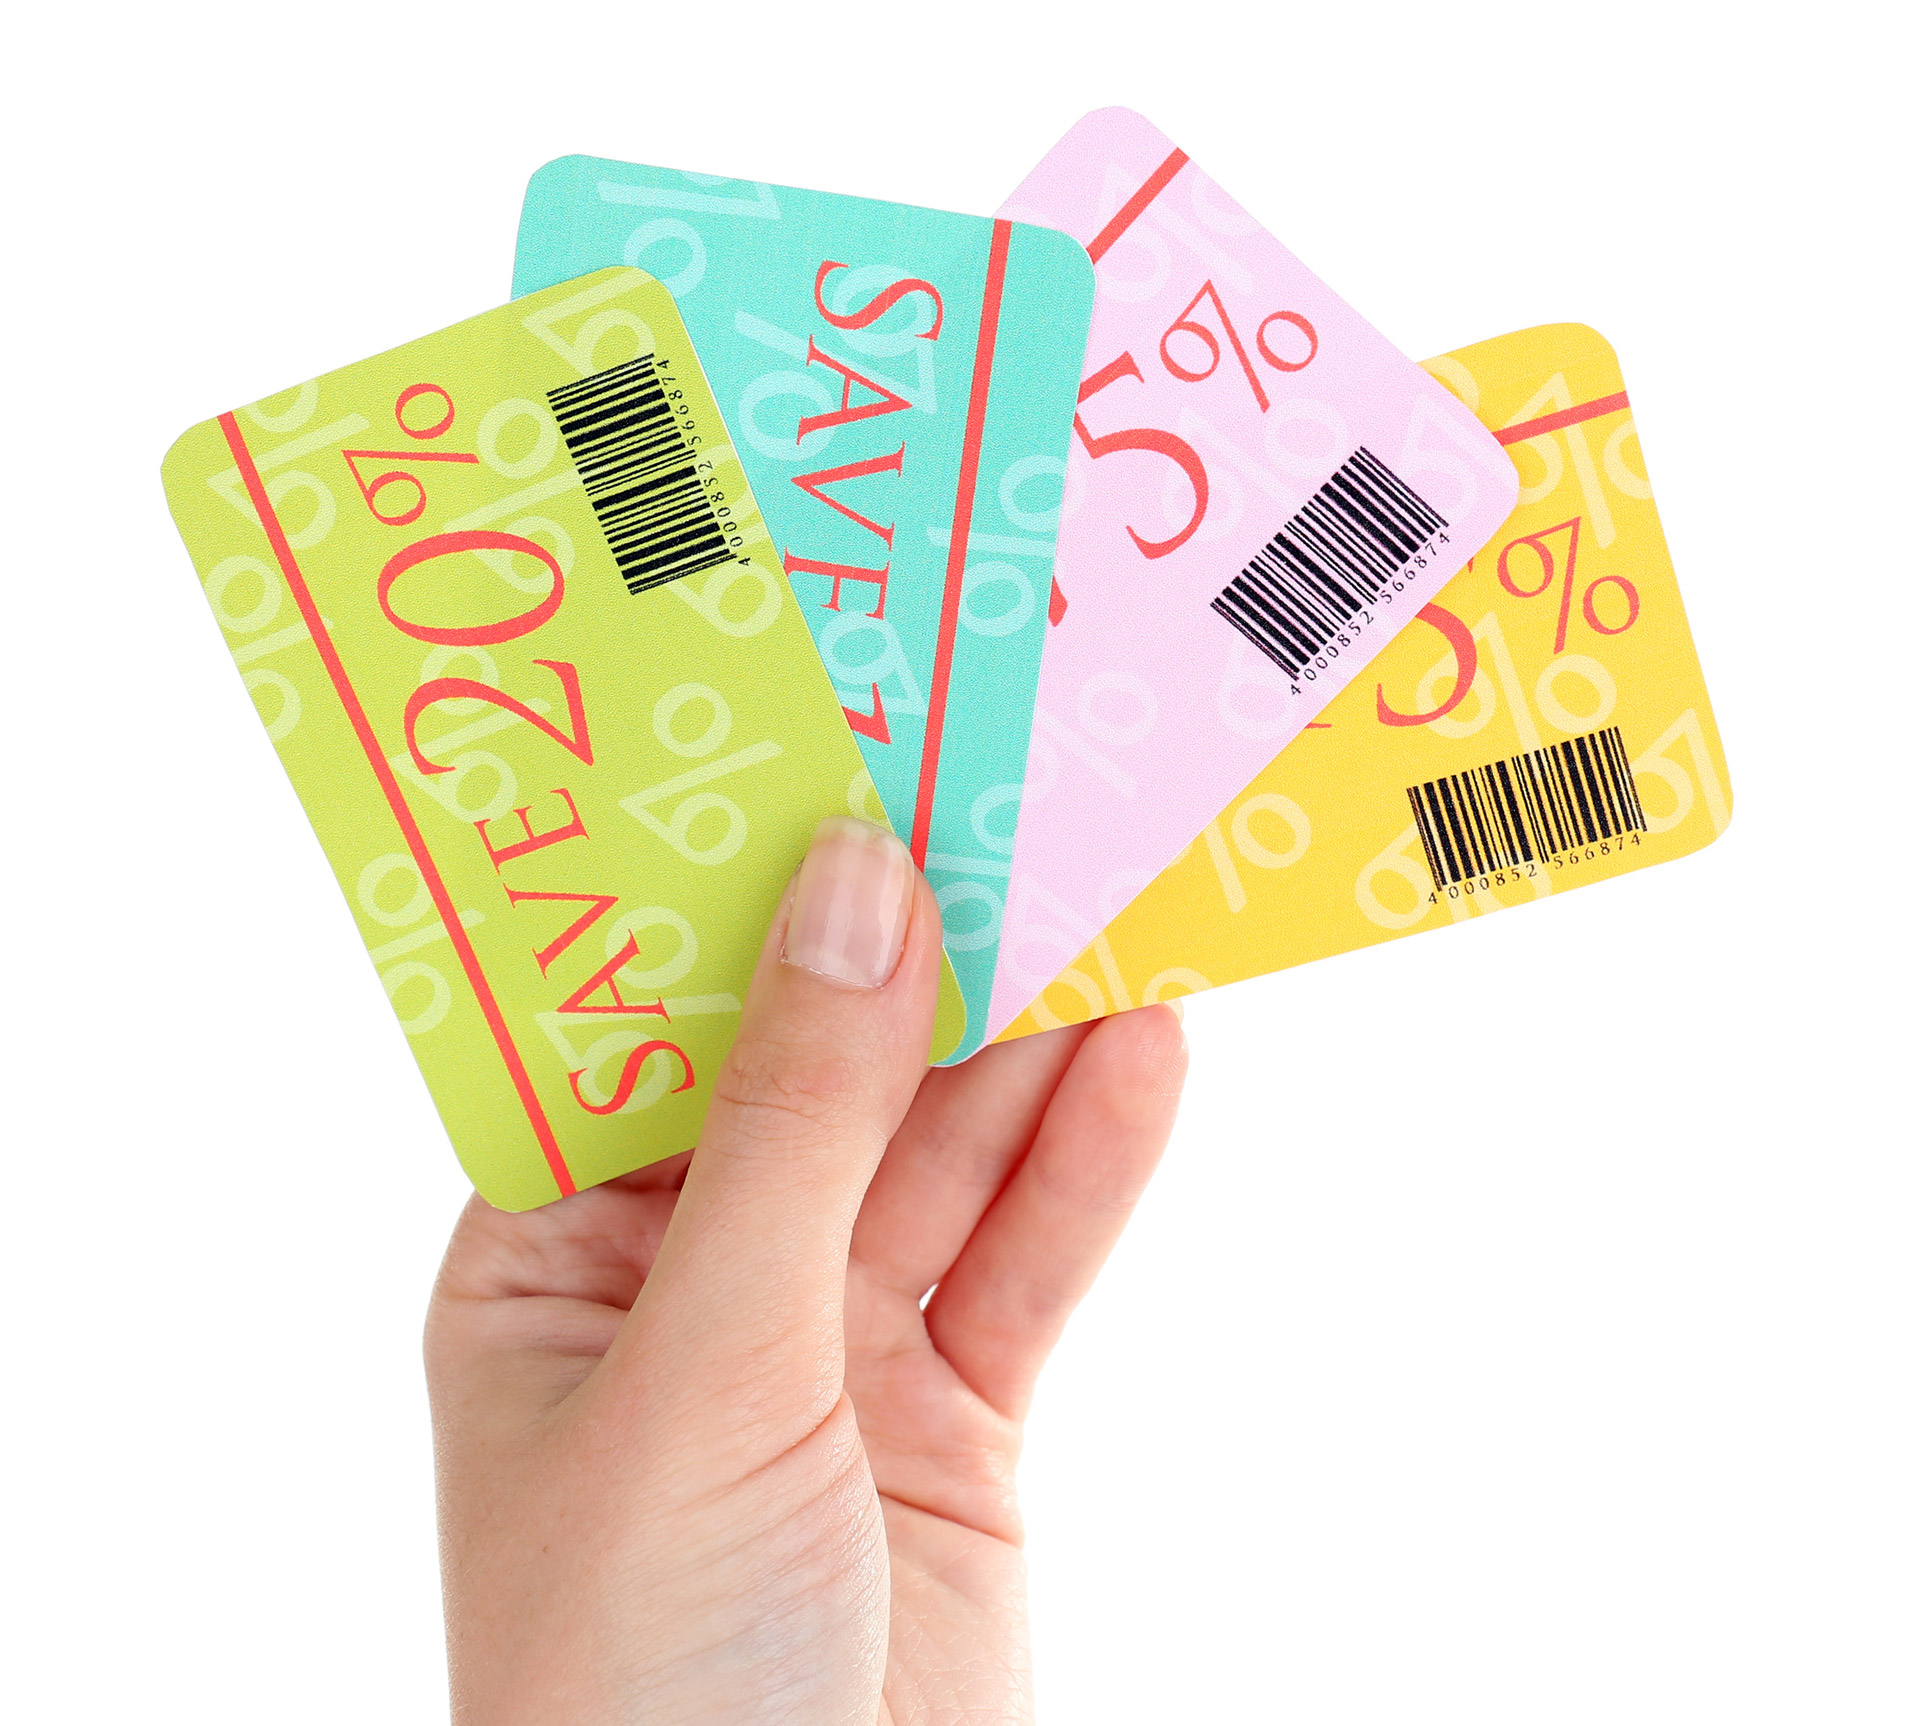 Are money off vouchers important to mums?